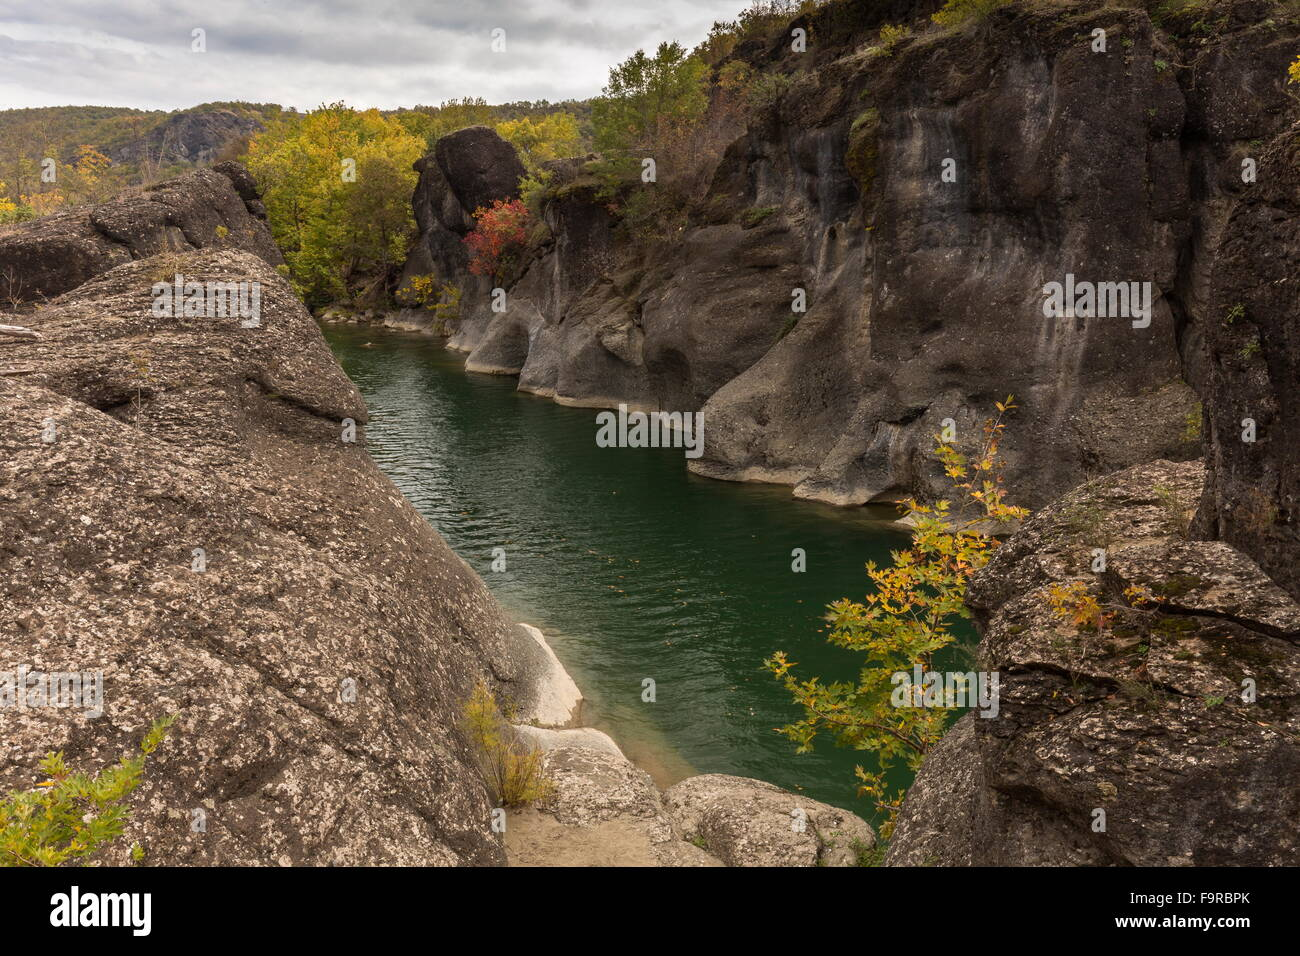 The conglomerate Venetikos river gorge, south of Grevena Stock Photo